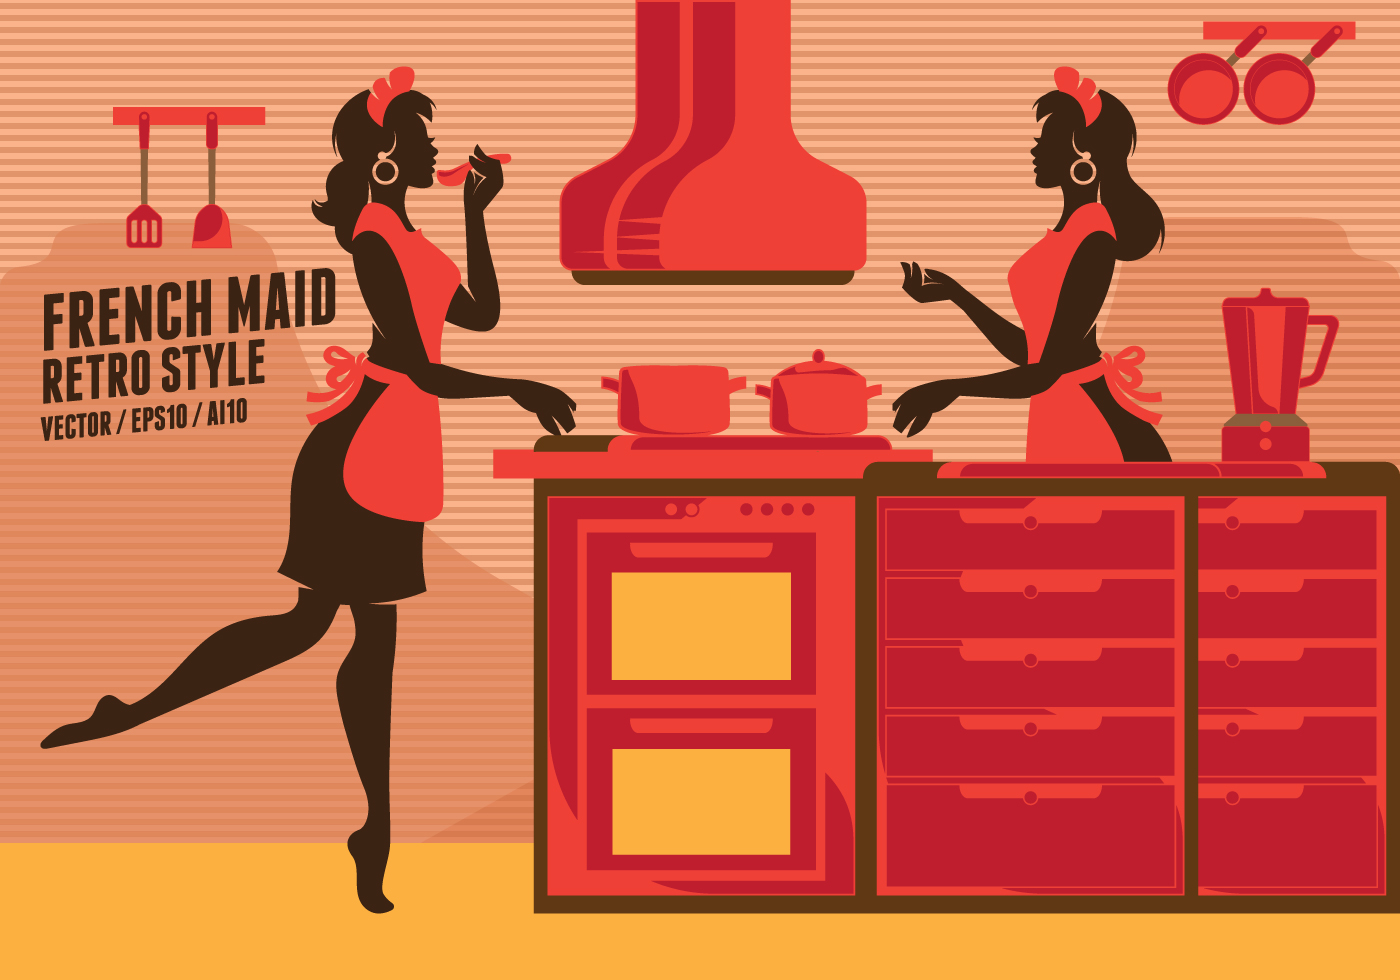 French maid retro clip art download free vector art stock graphics images